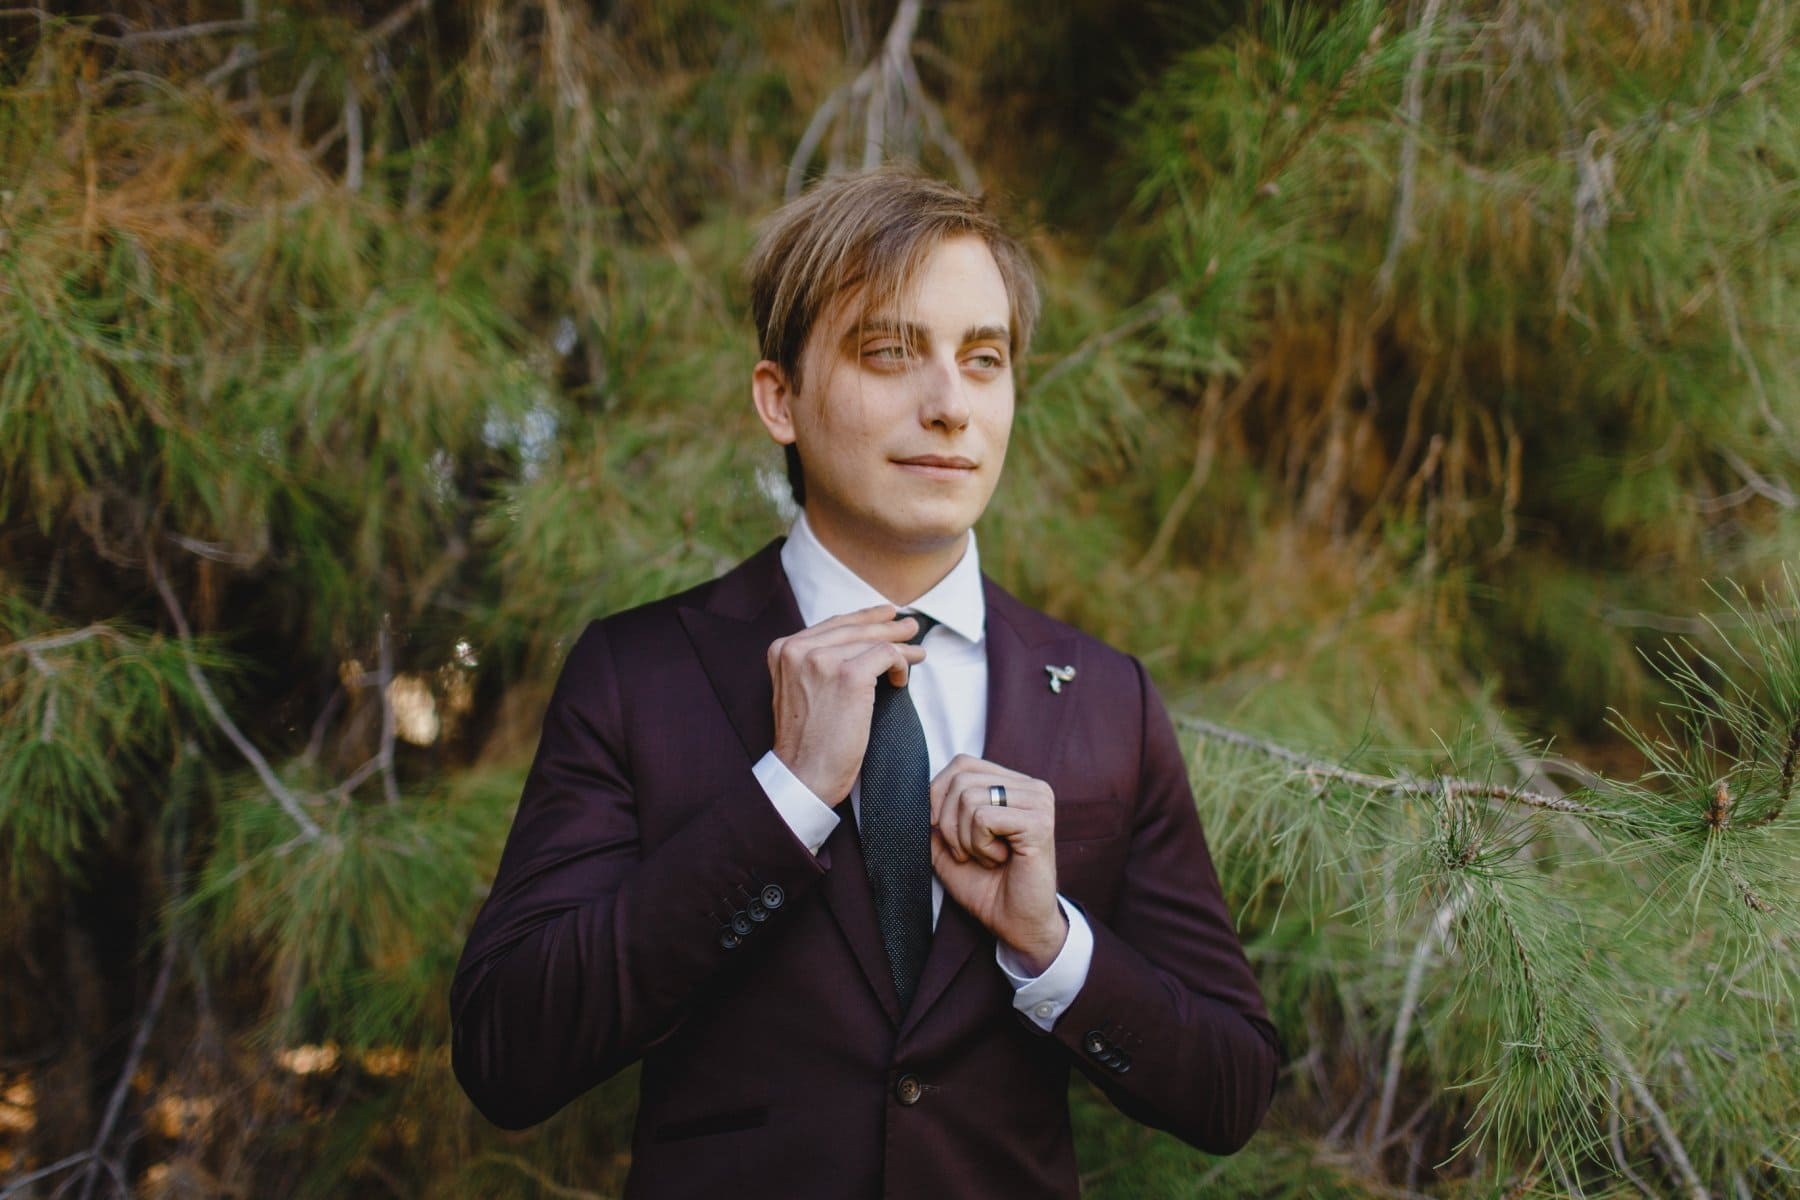 groom at the Meadow at Schnepf Farms in custom Magro maroon slim fit suit